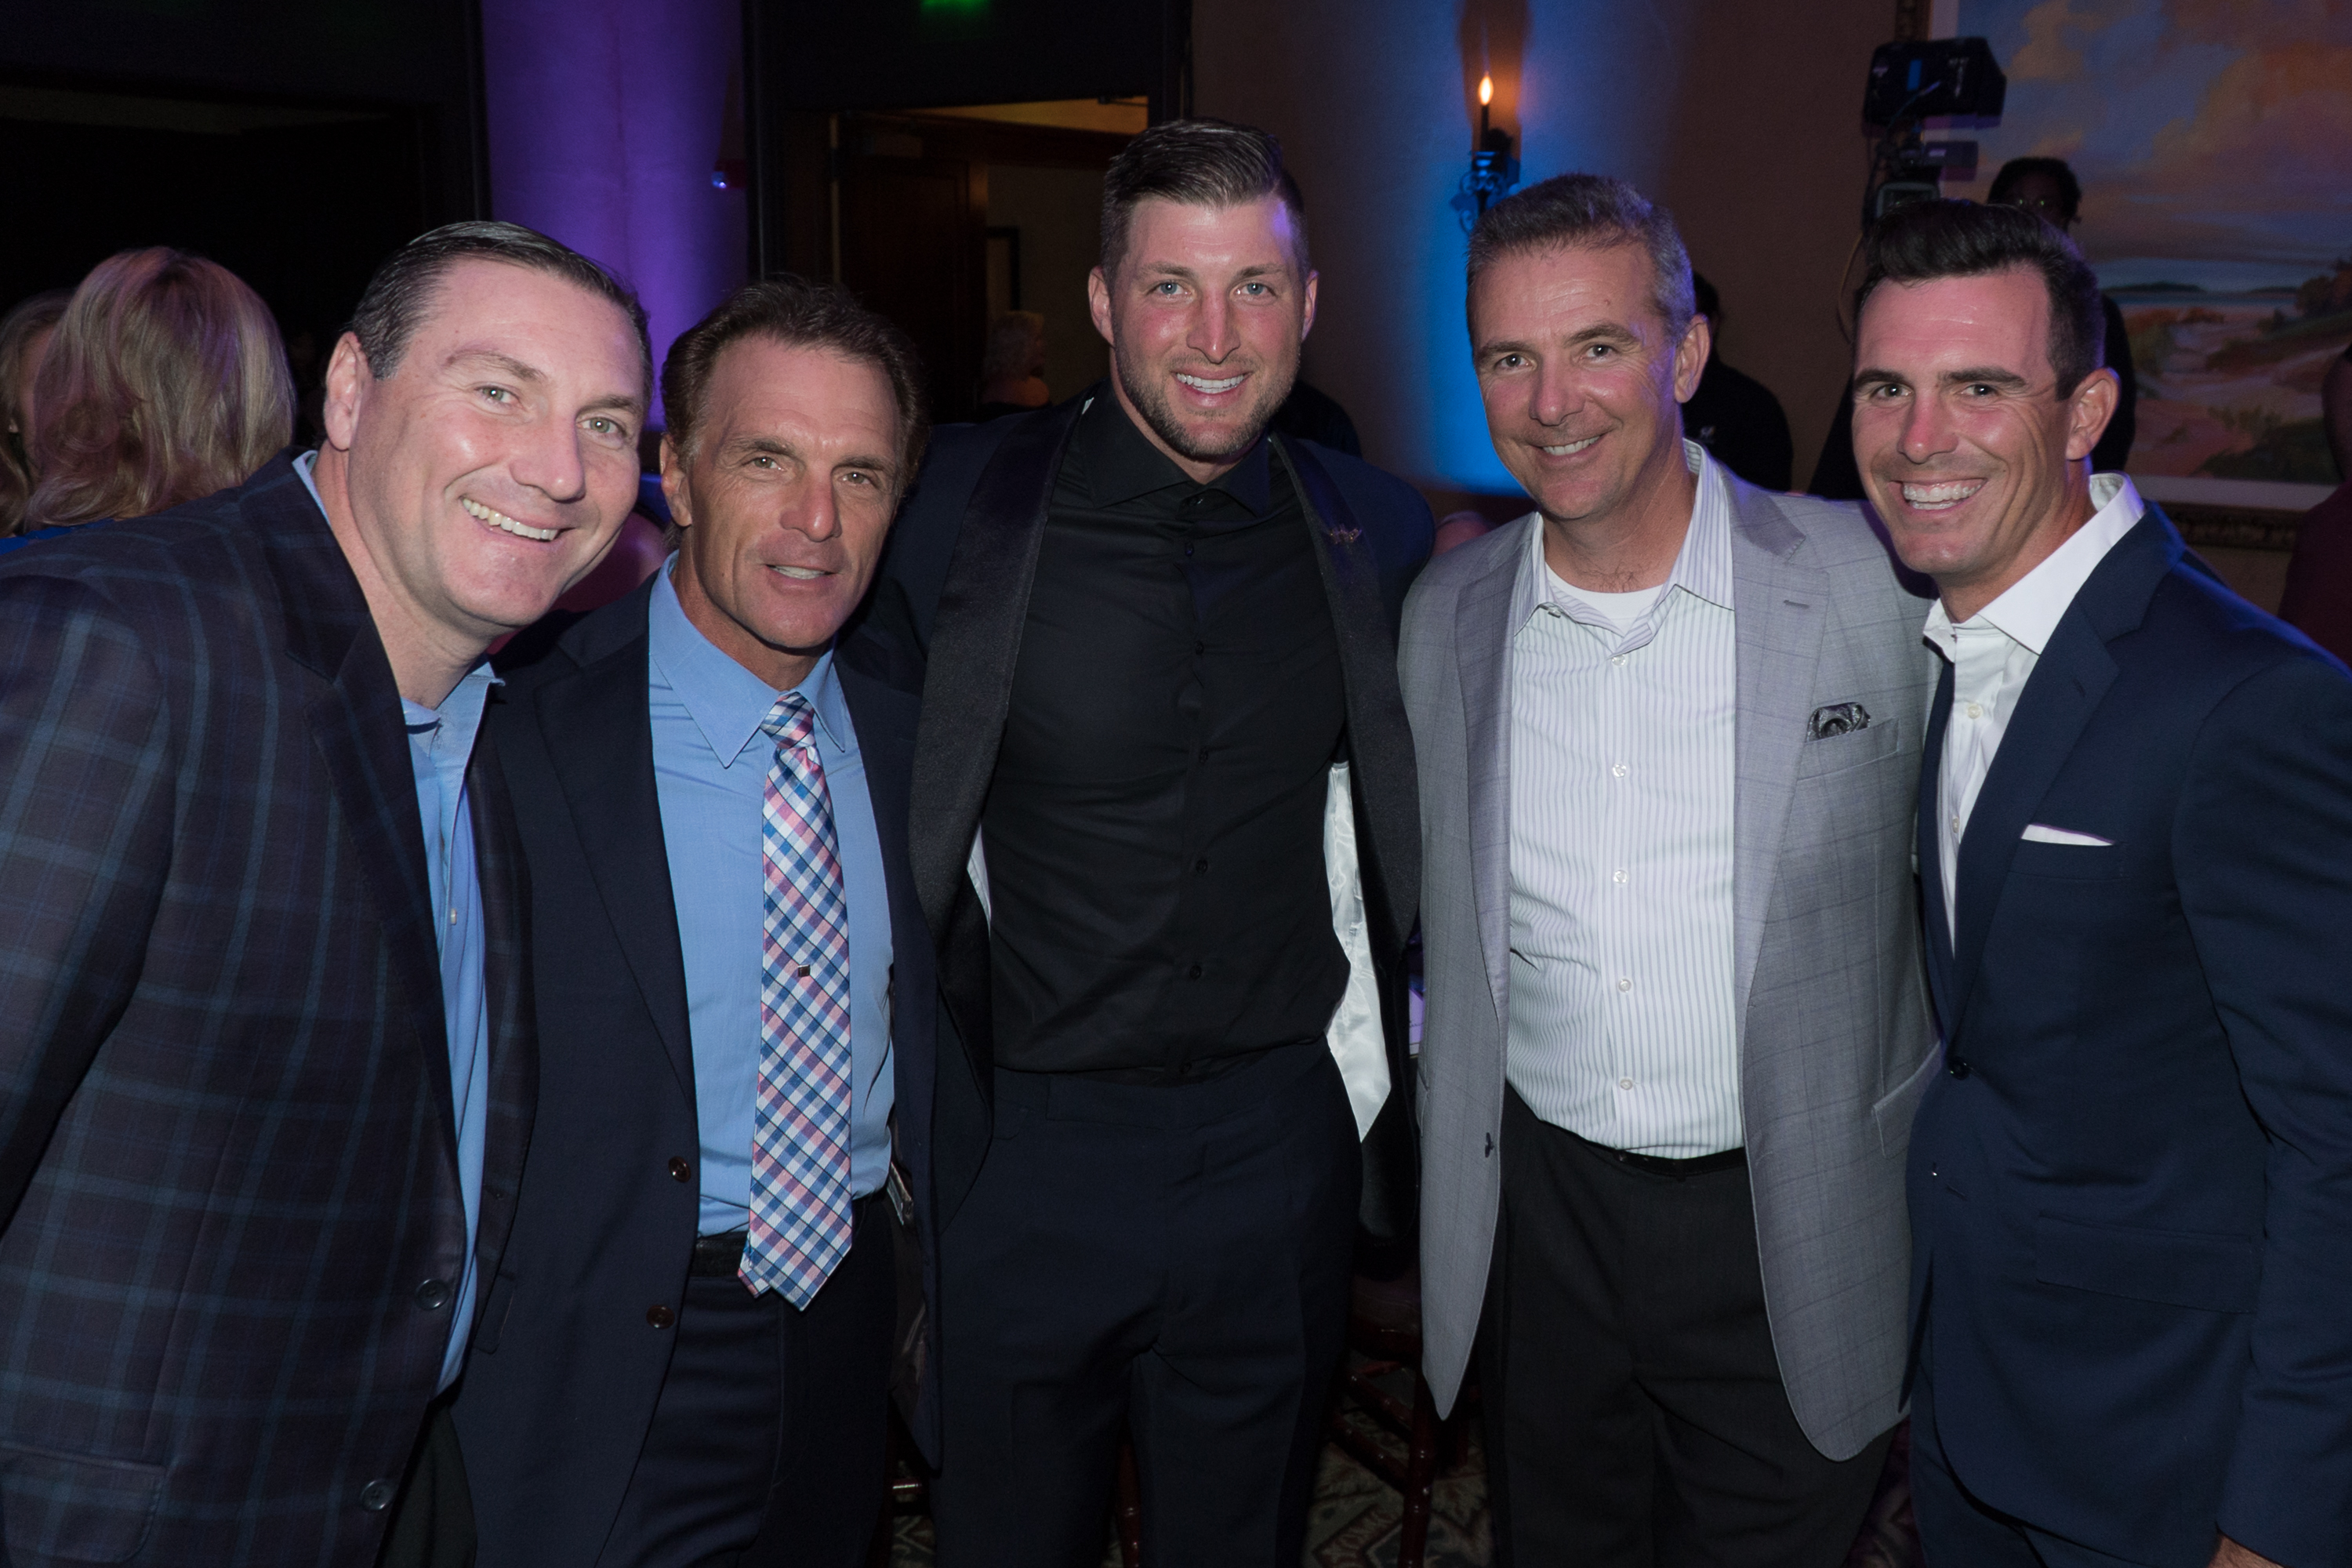 Dan_Mullen_Doug_Flutie_Tim_Tebow_Urban_Meyer_Billy_Horschel.jpg